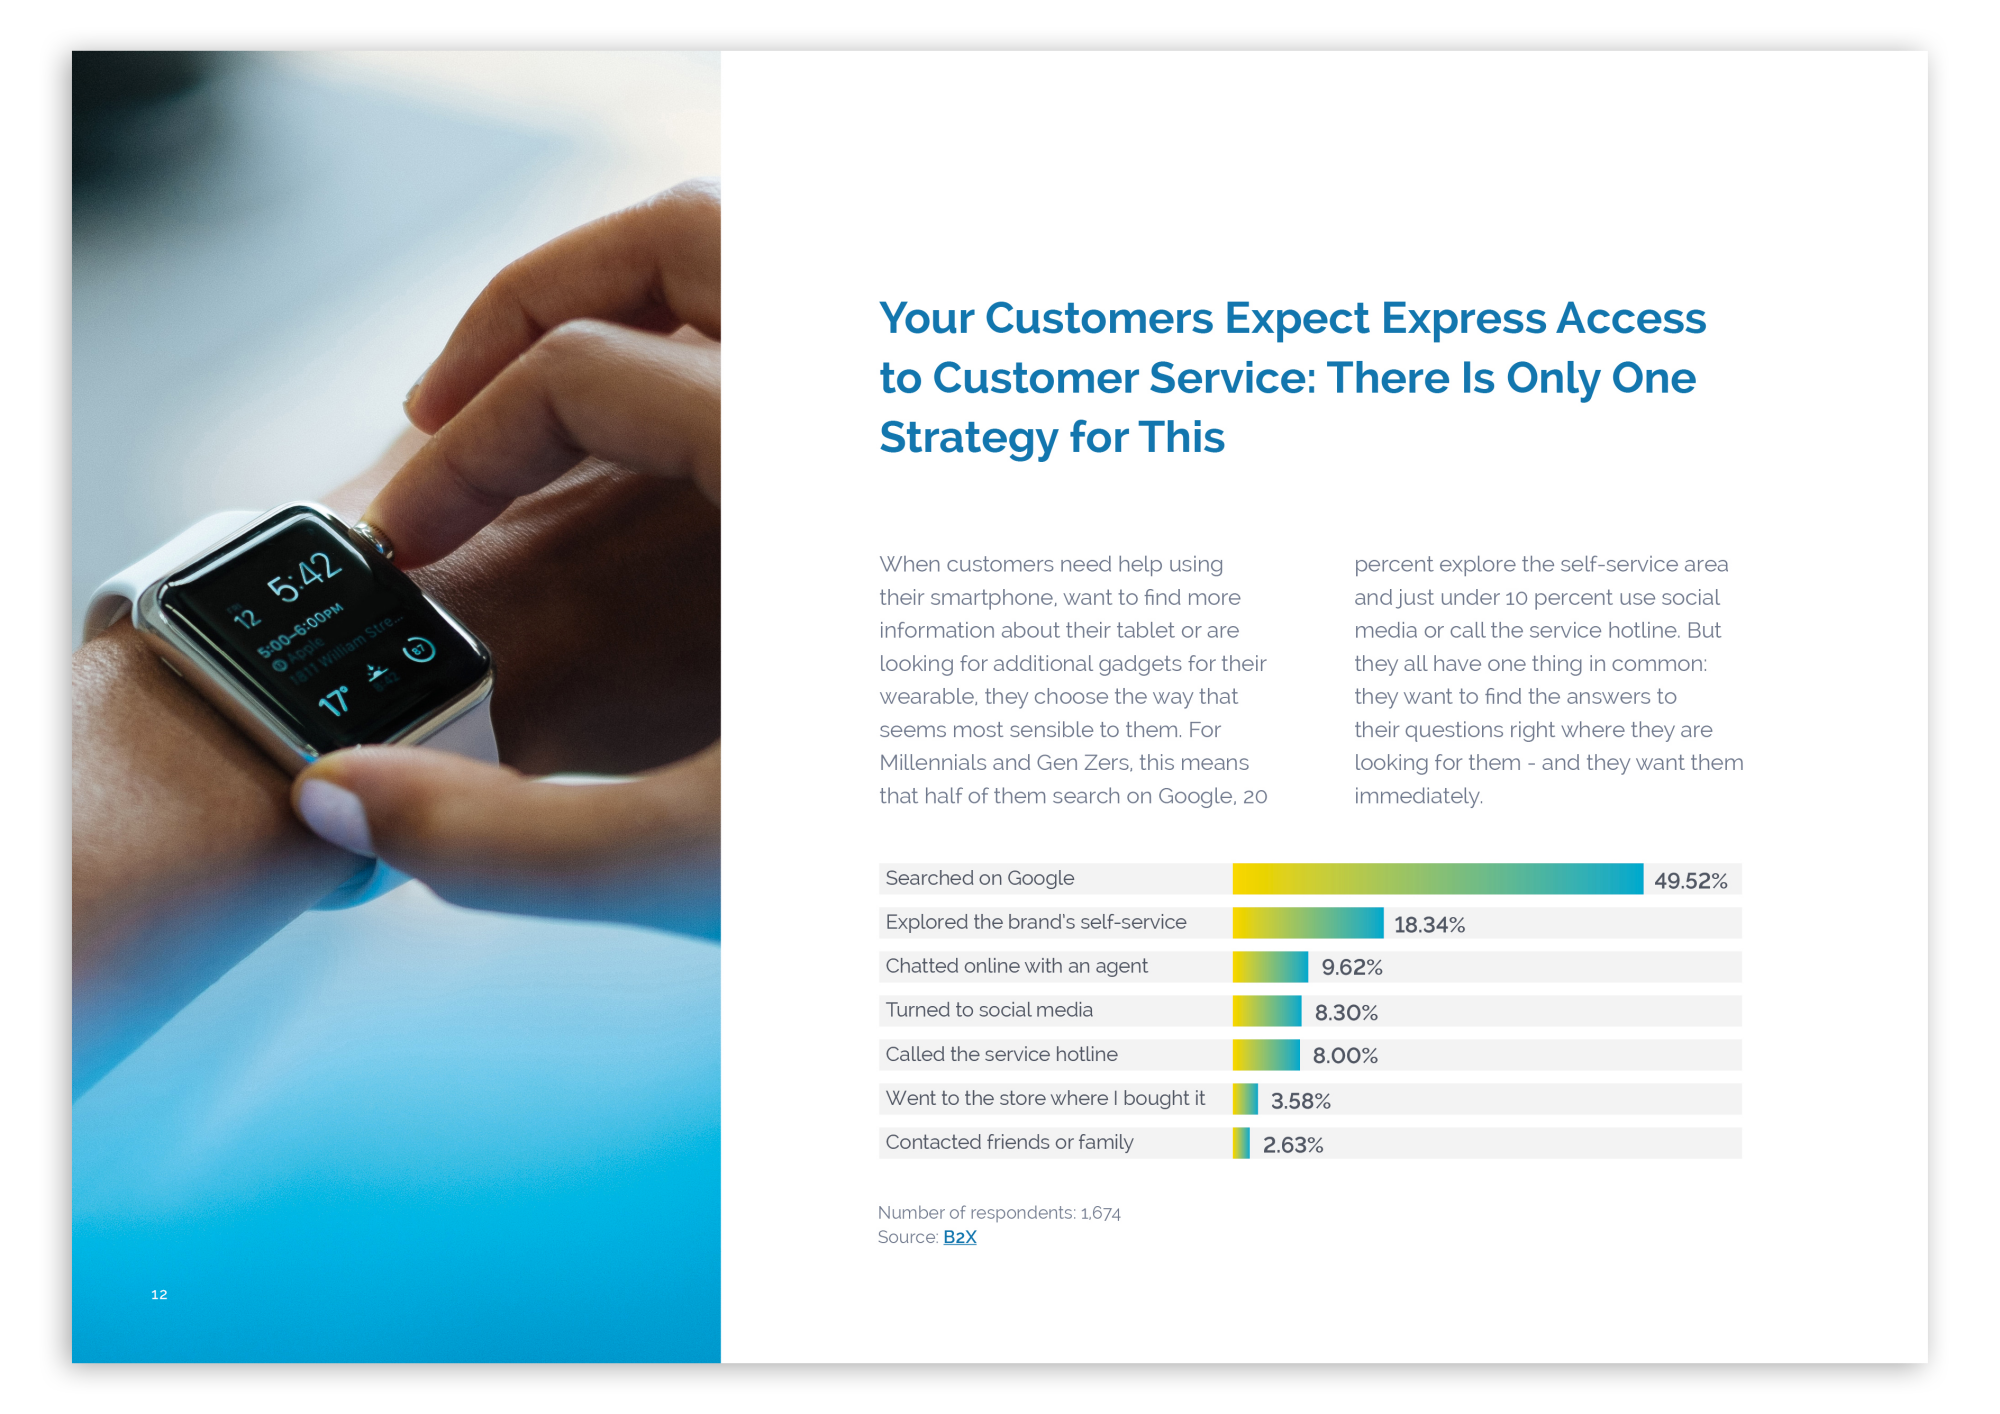 Express Access to Customer Service